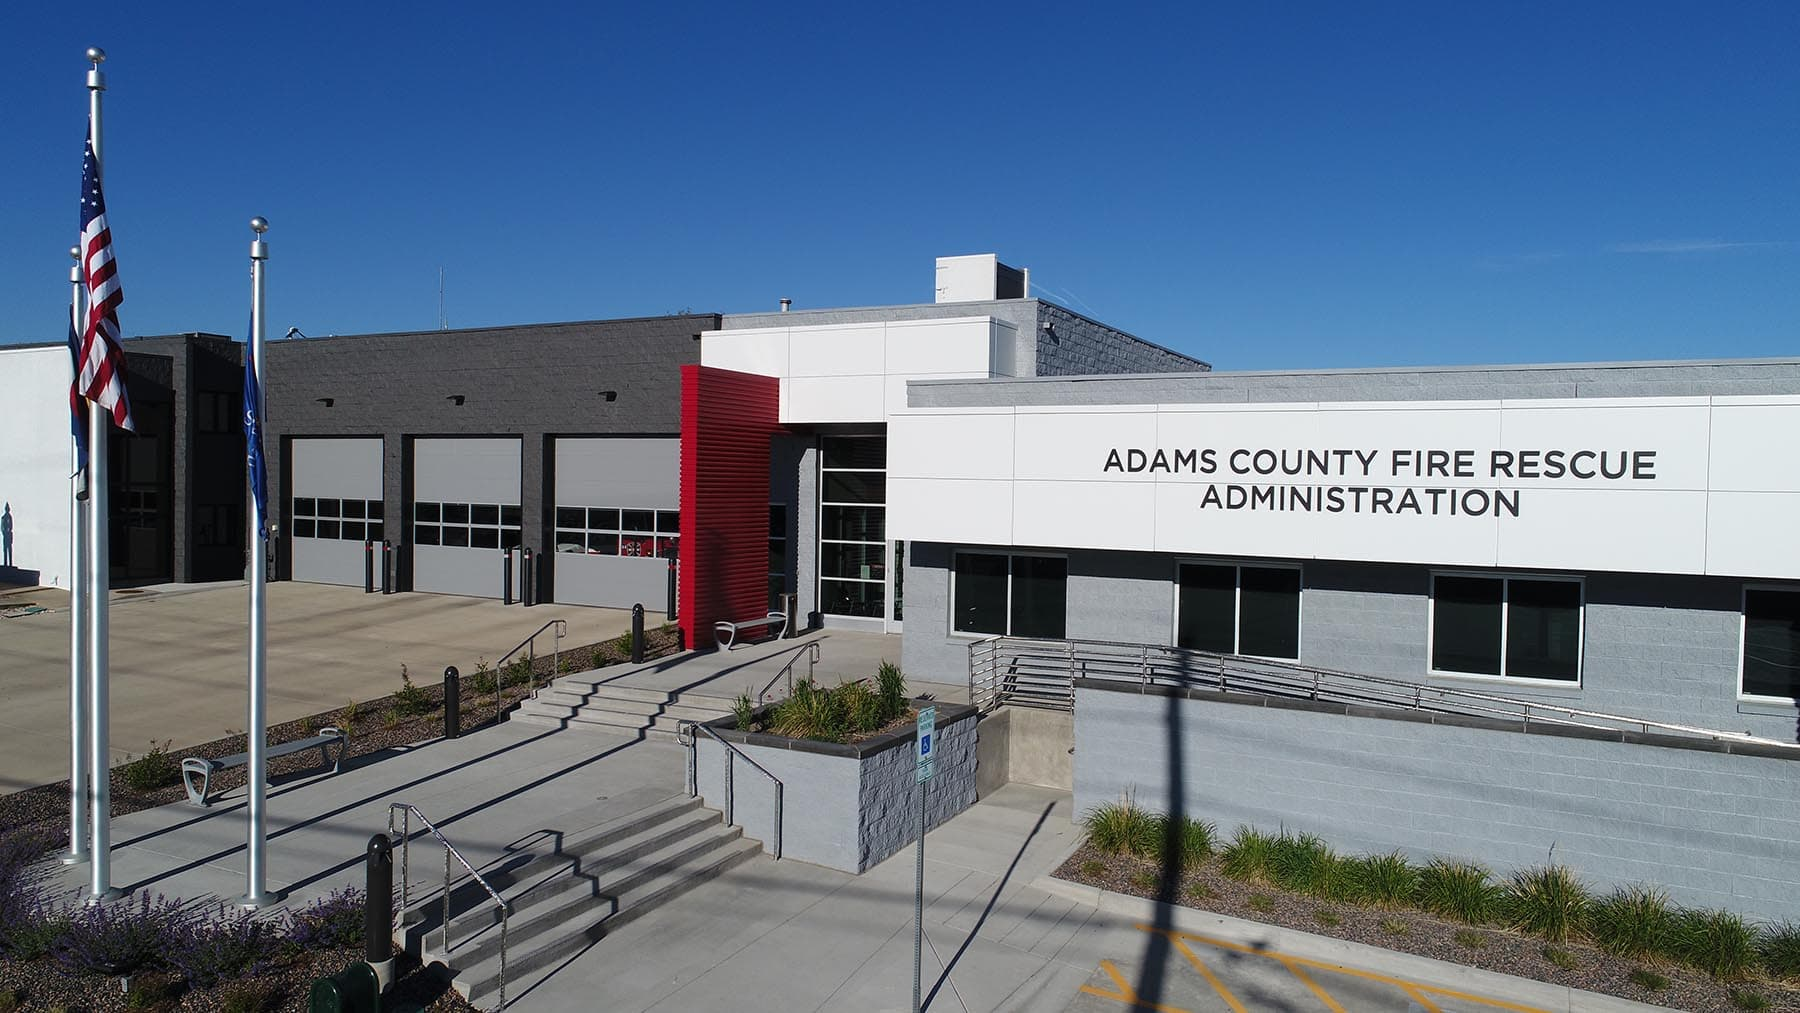 Adams County Fire Rescue Administration Building